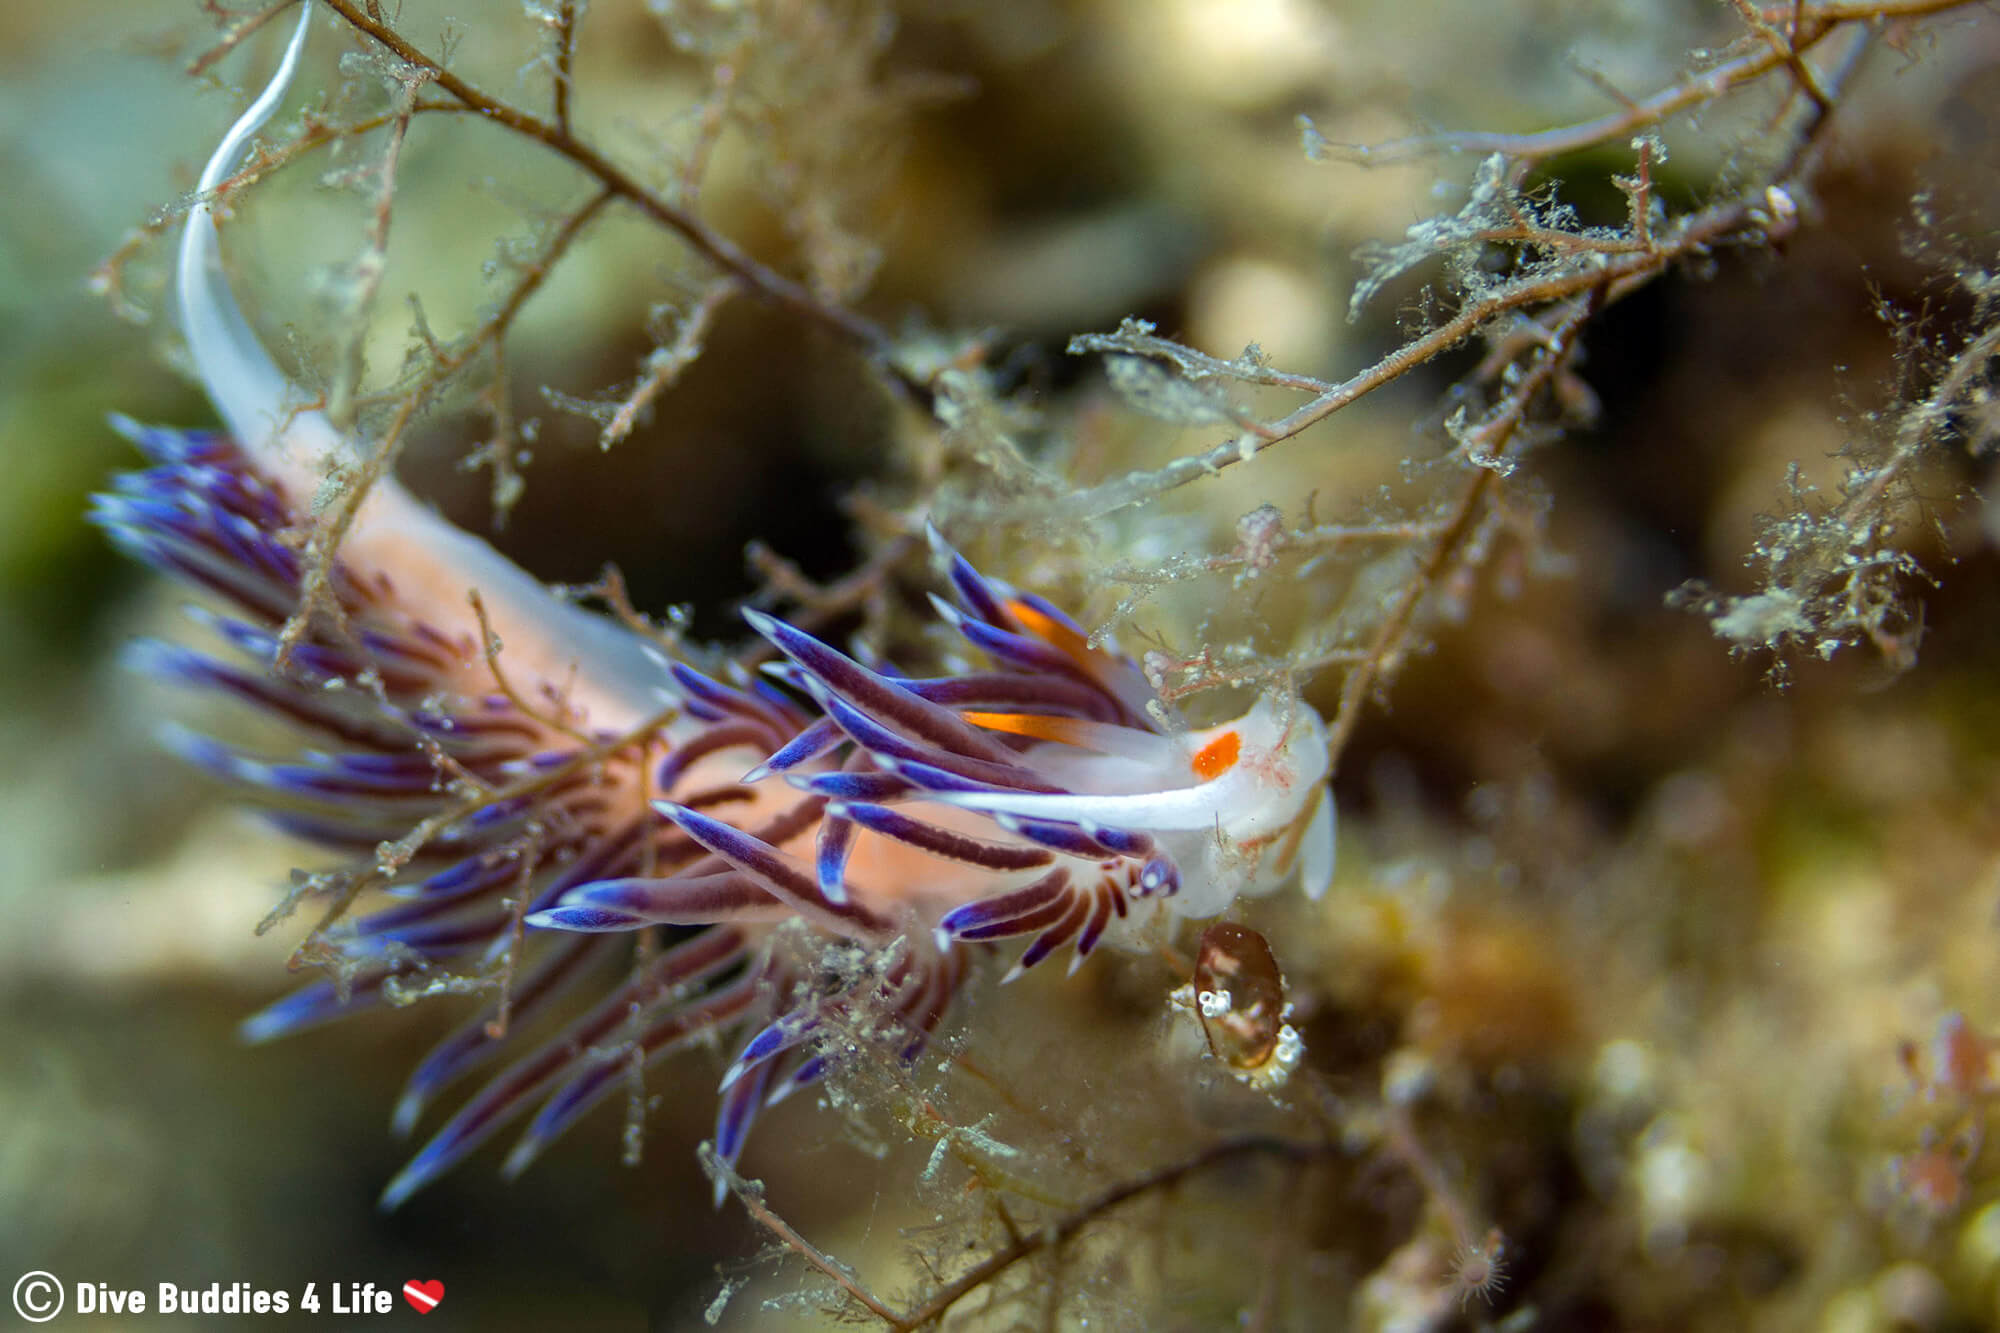 A White, Purple And Orange Colored Nudibranch On A Piece Of Flora In Dubrovnik, Croatia One Of Europe's Balkan Countries